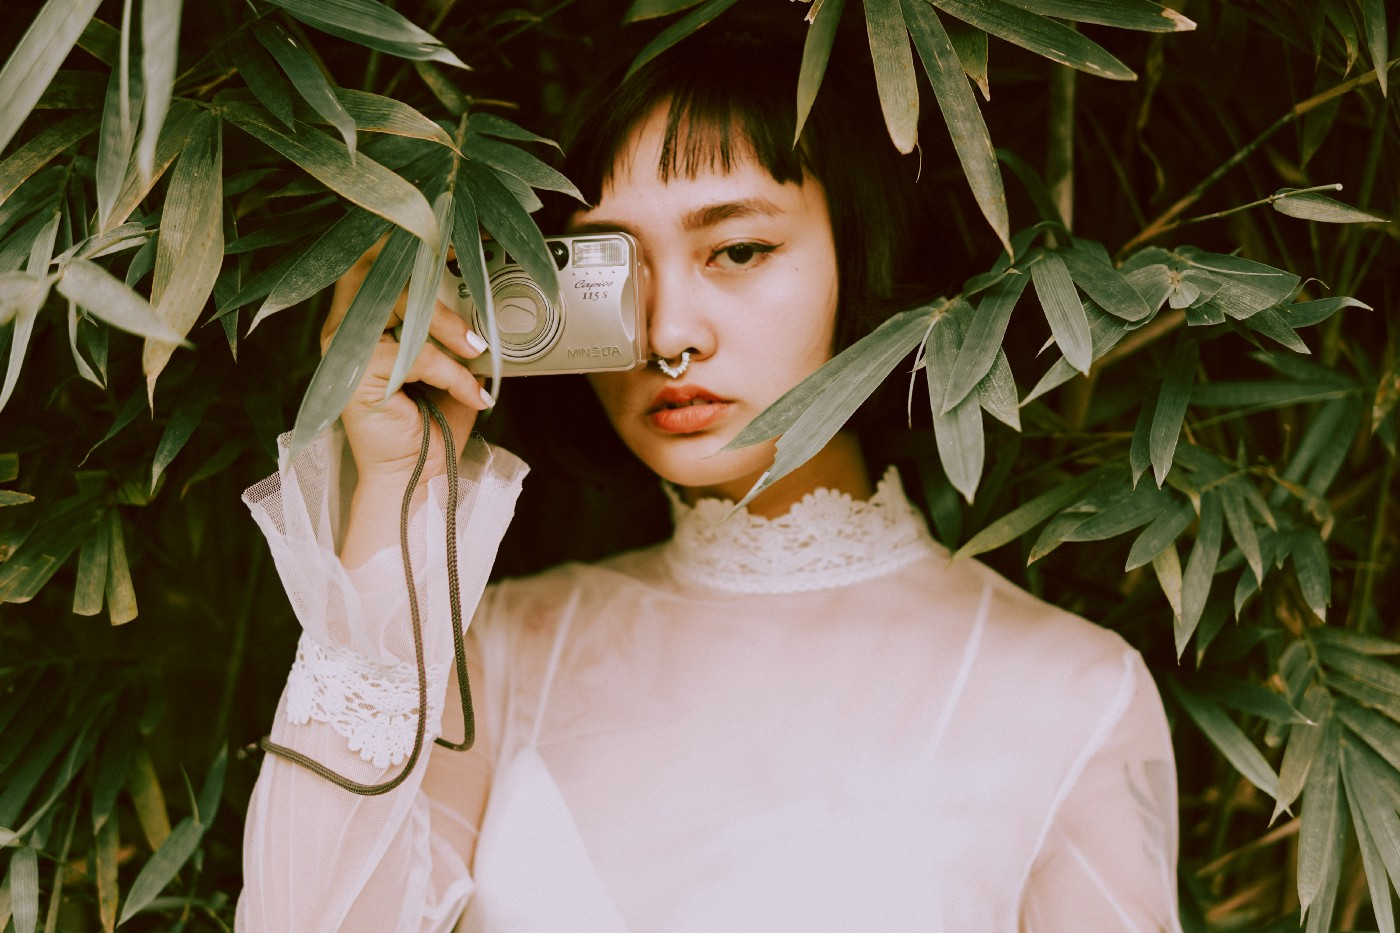 A woman with short black hair wearing a white translucent long sleeve top with lace detail holding a camera to one eye against a green leafy background